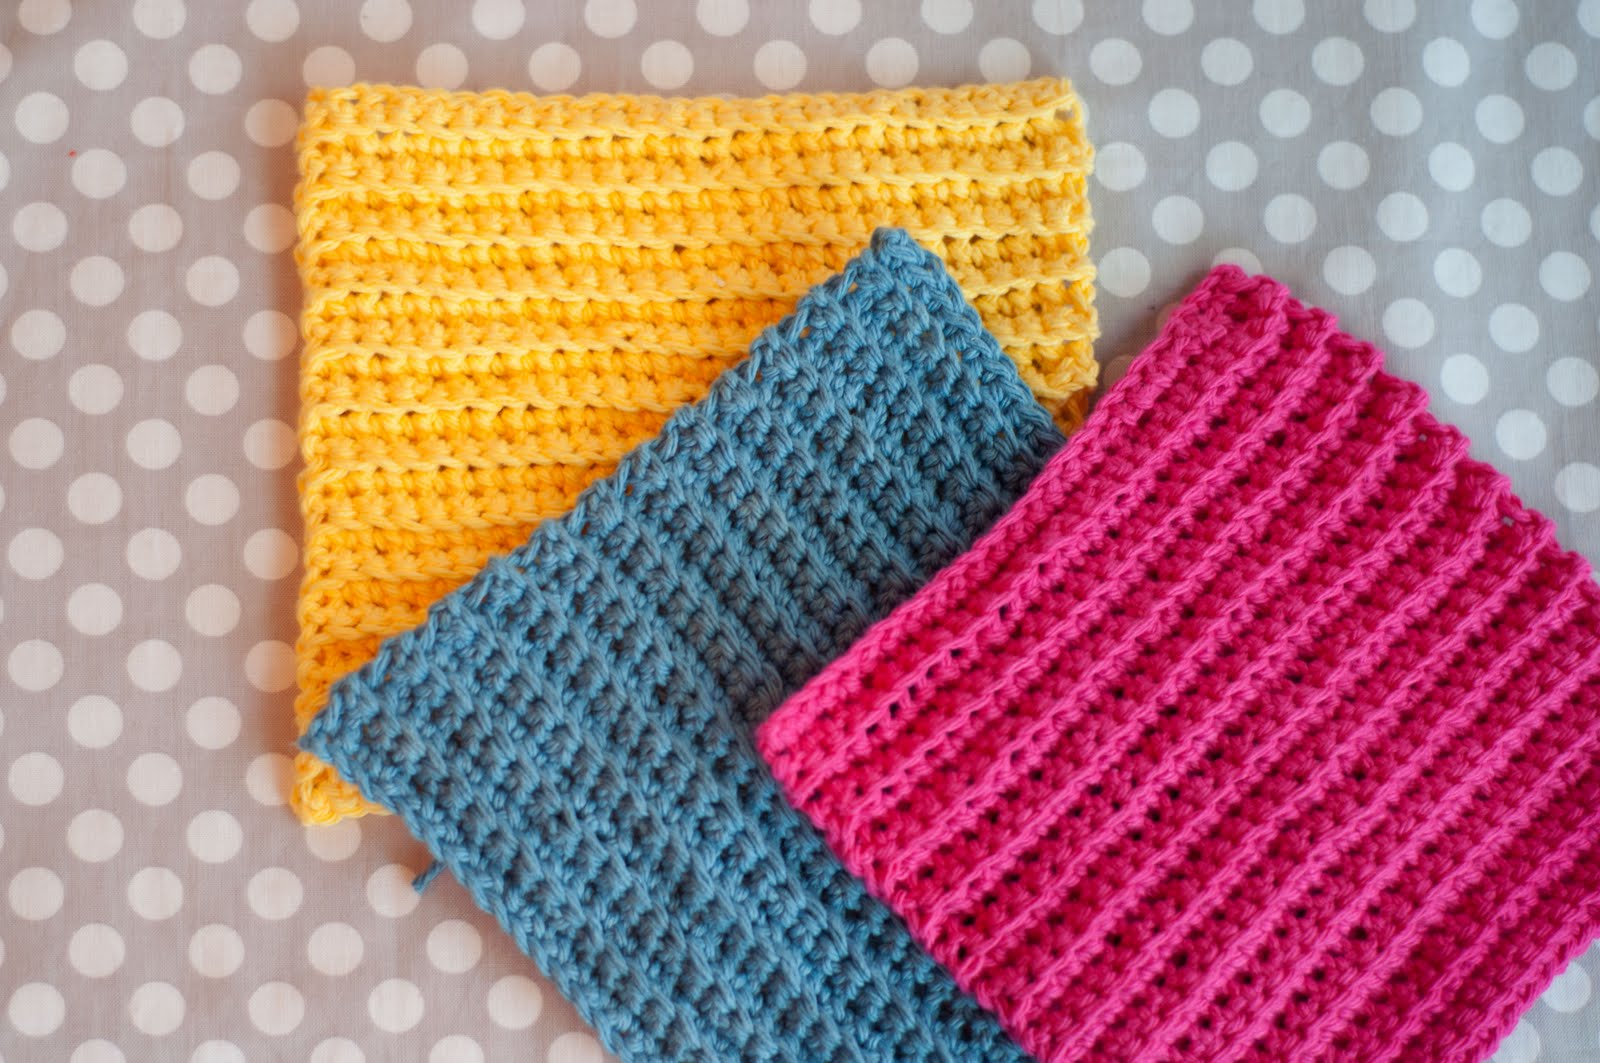 free crochet beginner patterns crochet for beginners Book Covers